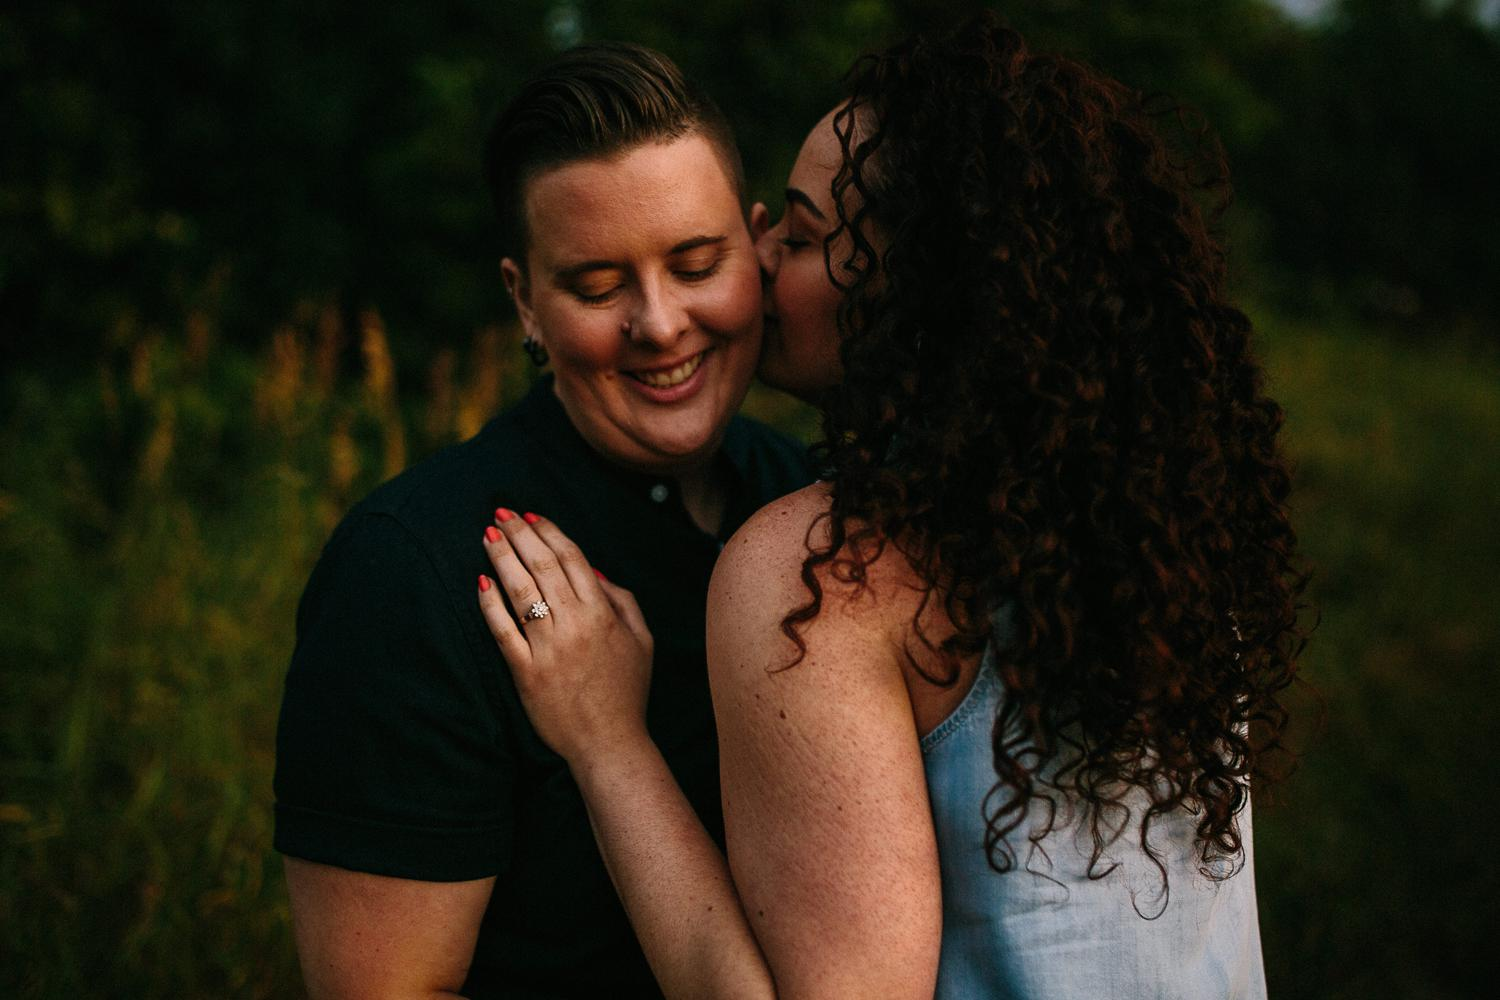 lailicka couples portrait session perth ontario-024.jpg